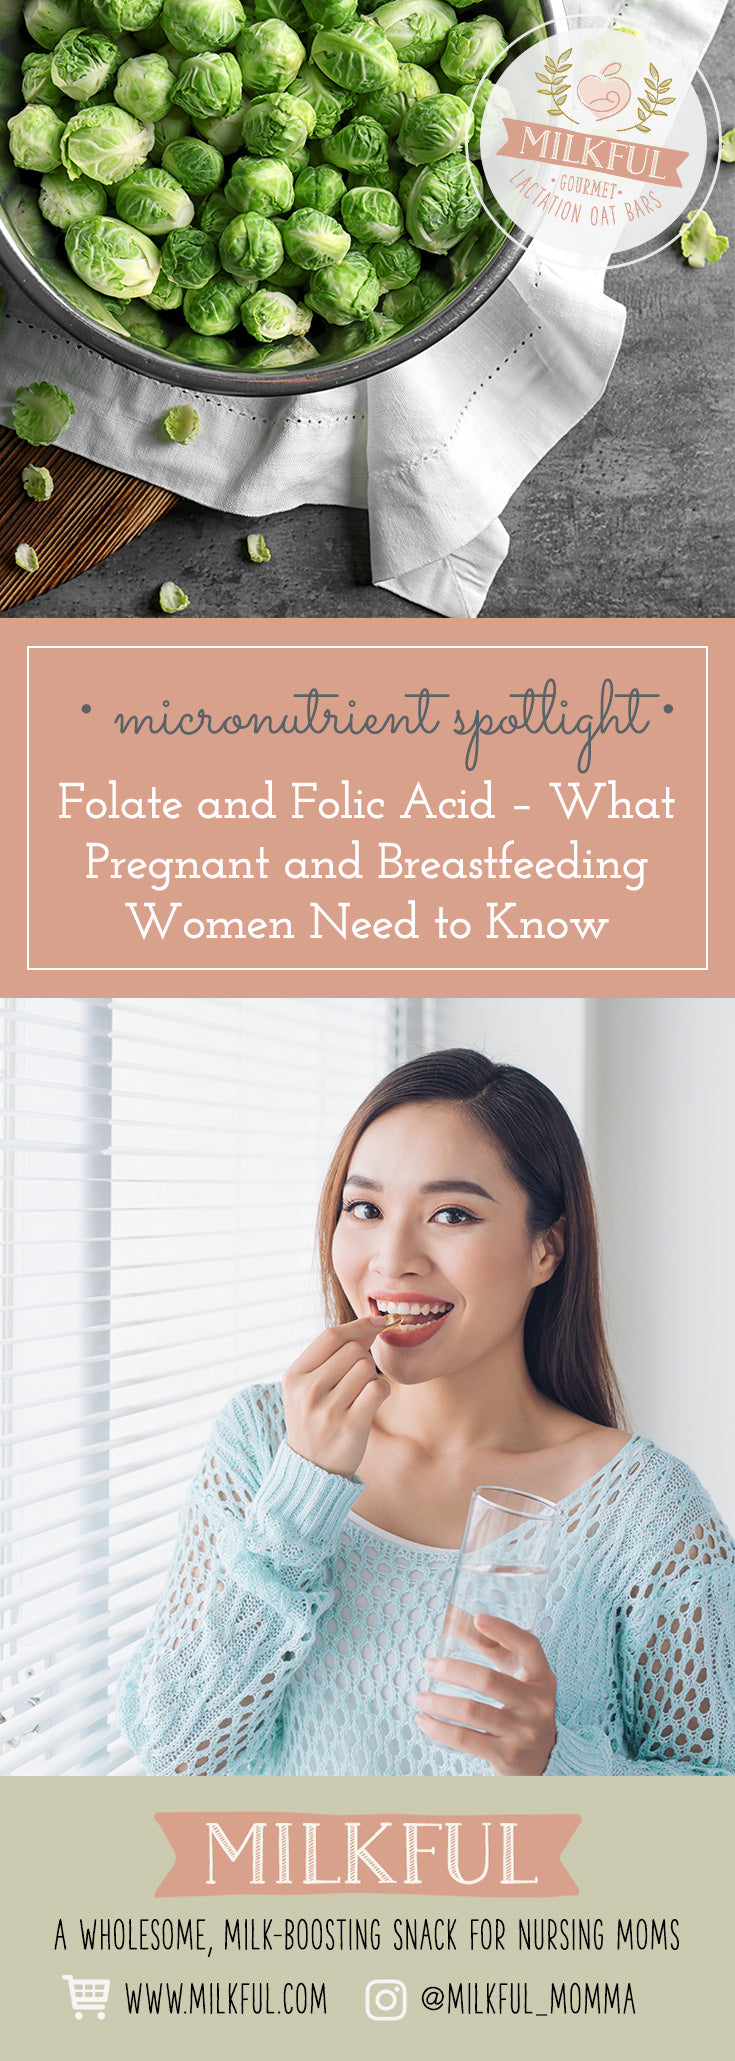 Folate and Folic Acid – What Pregnant and Breastfeeding Women Need to Know